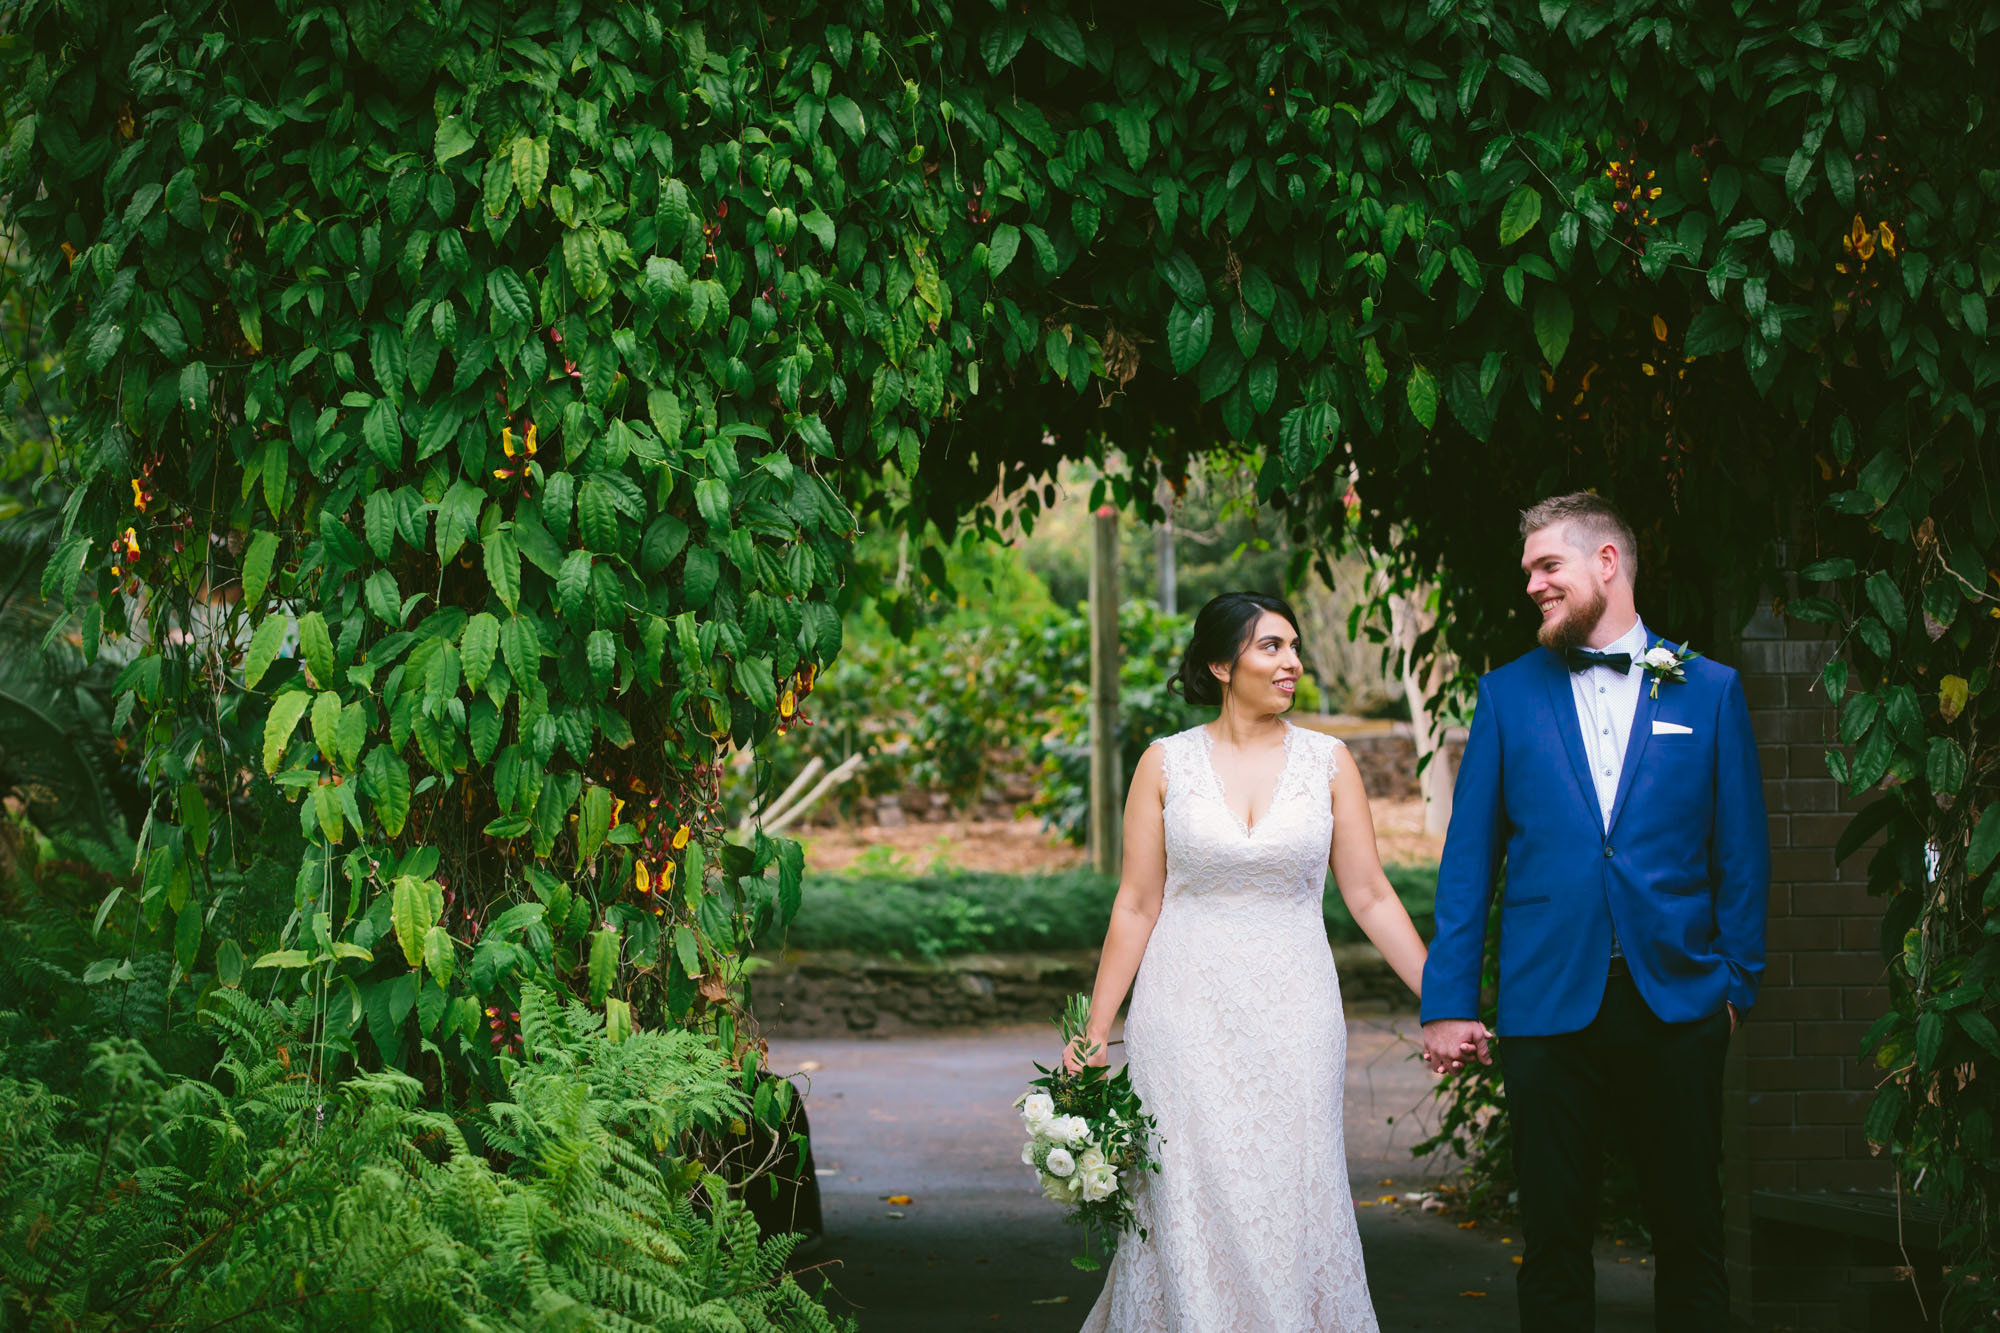 Mel_Tom_MountCoot-tha_BotanicalGardens_Darling&Co_WeddingPhotography_AnnaOsetroff_Website-64